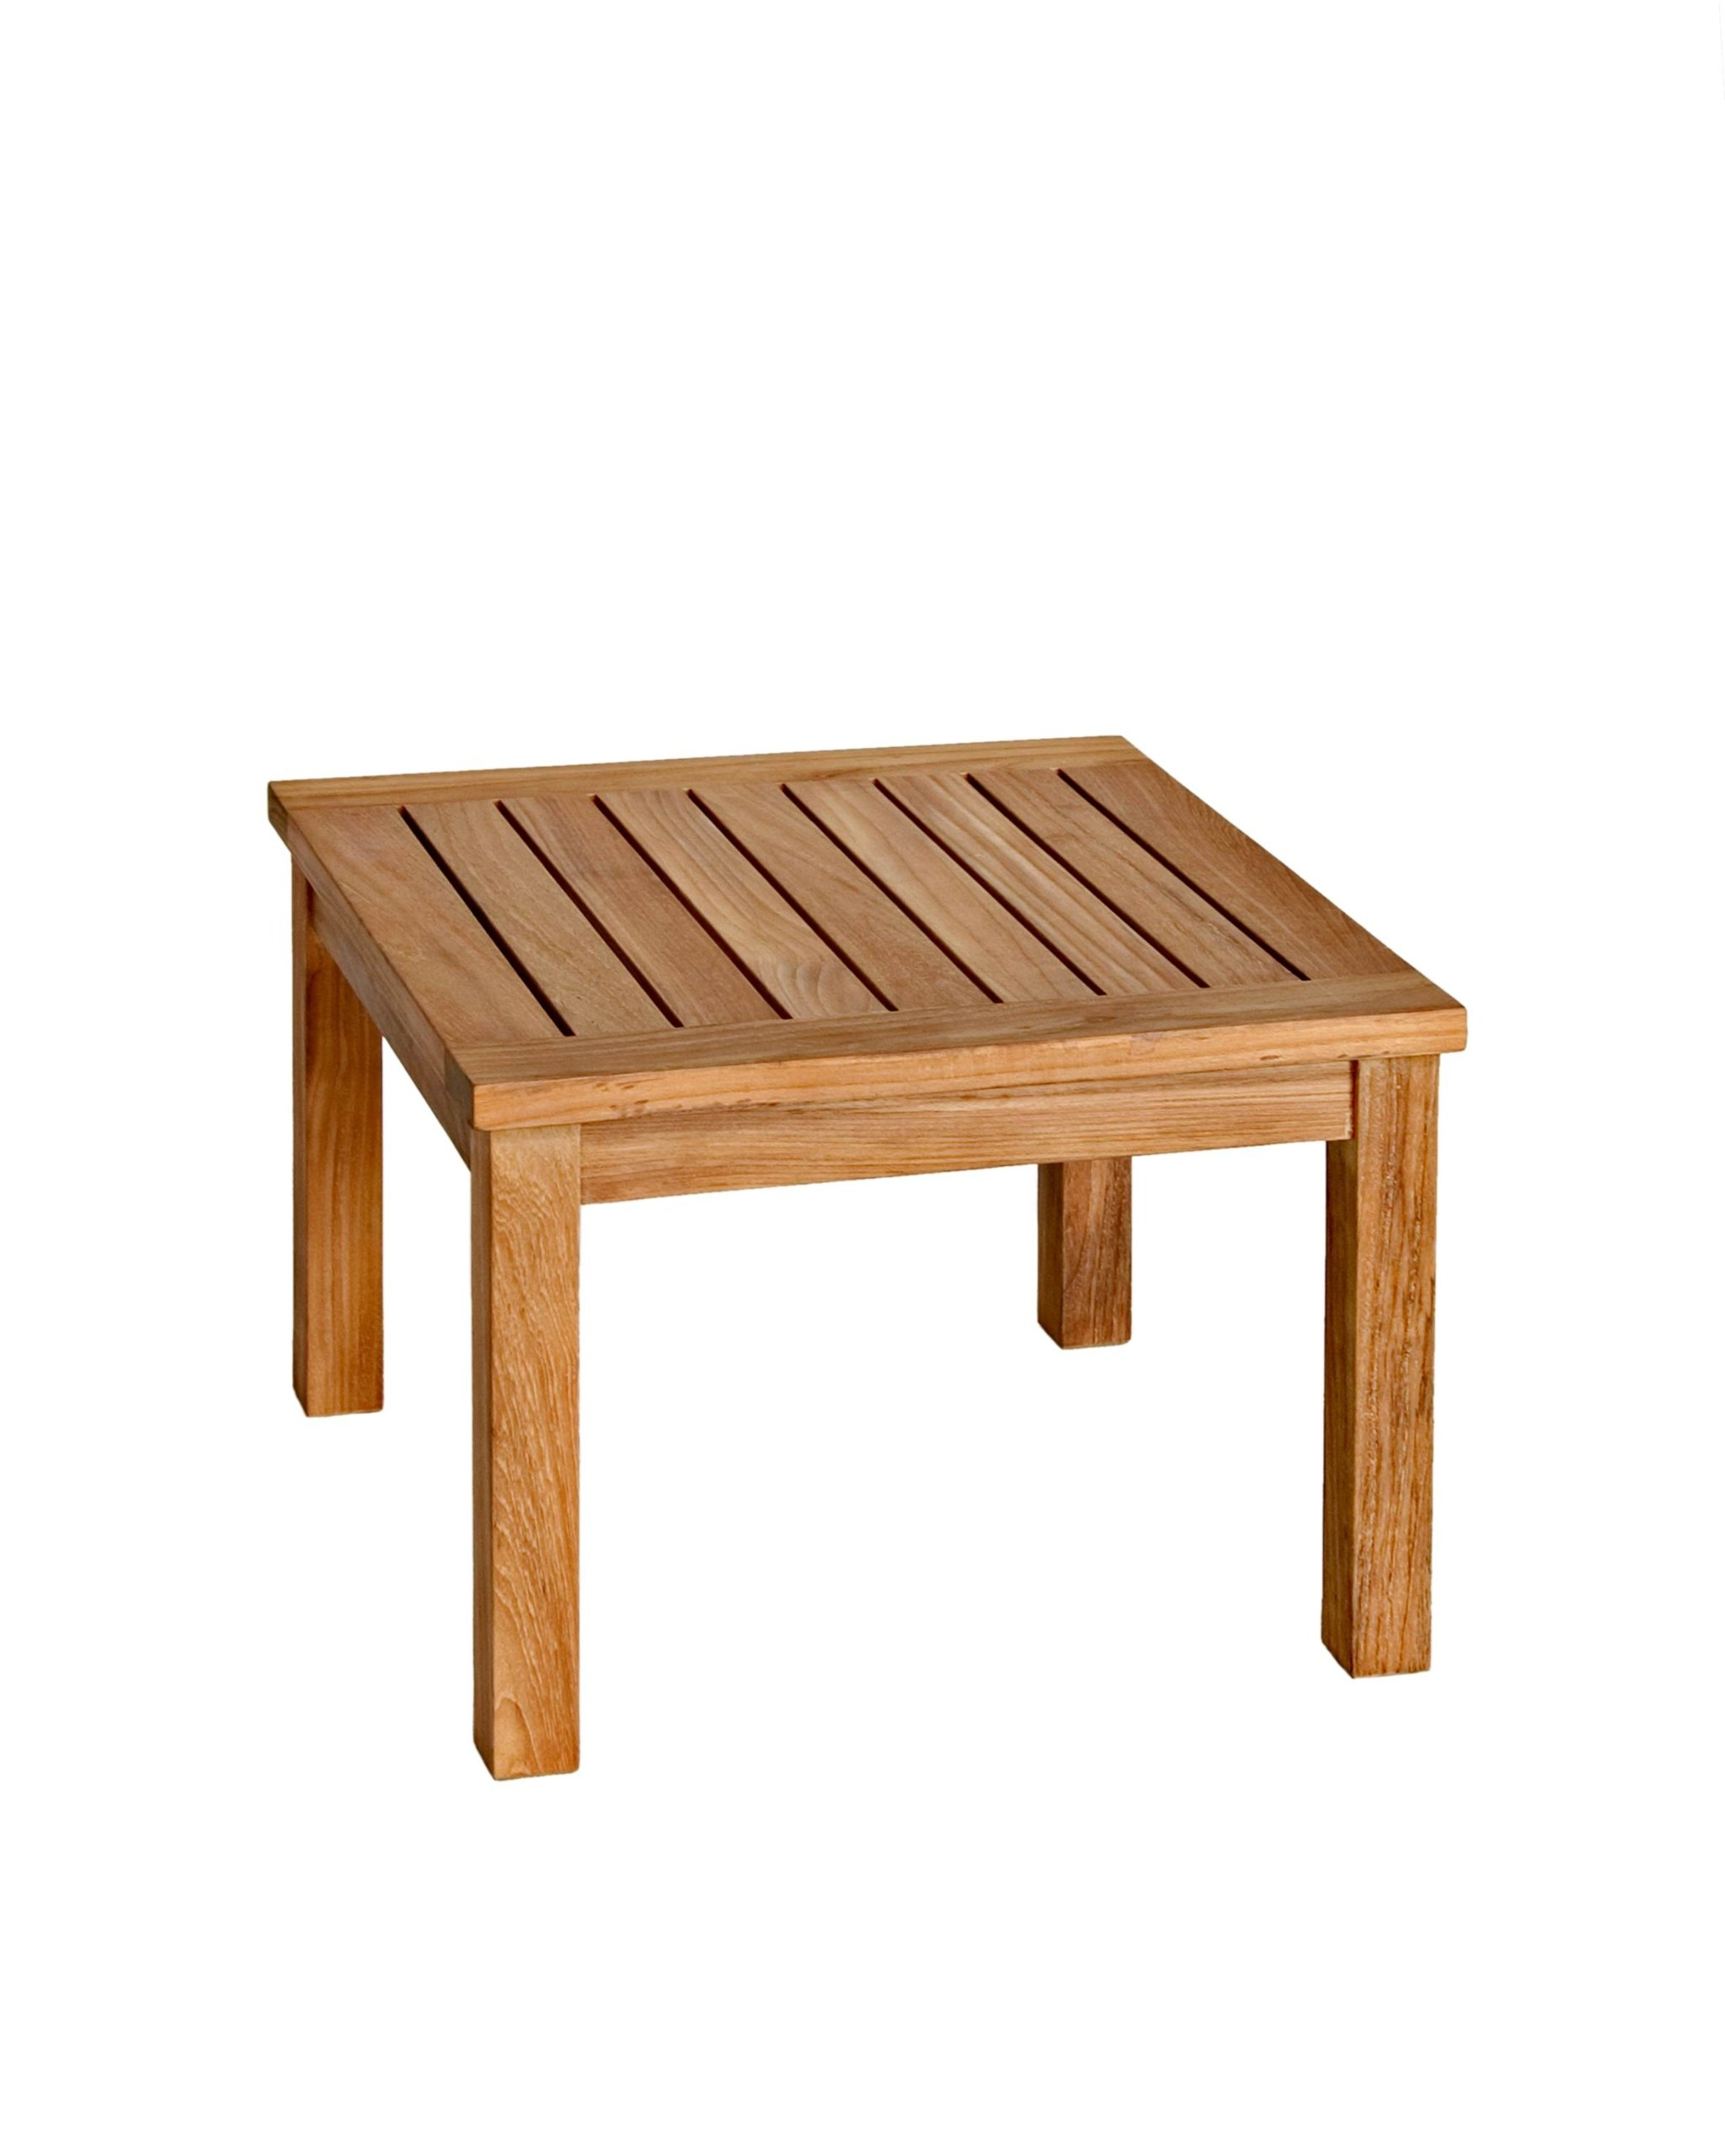 Three Birds Casual Newport 20-Inch Low Square Side Table, Teak